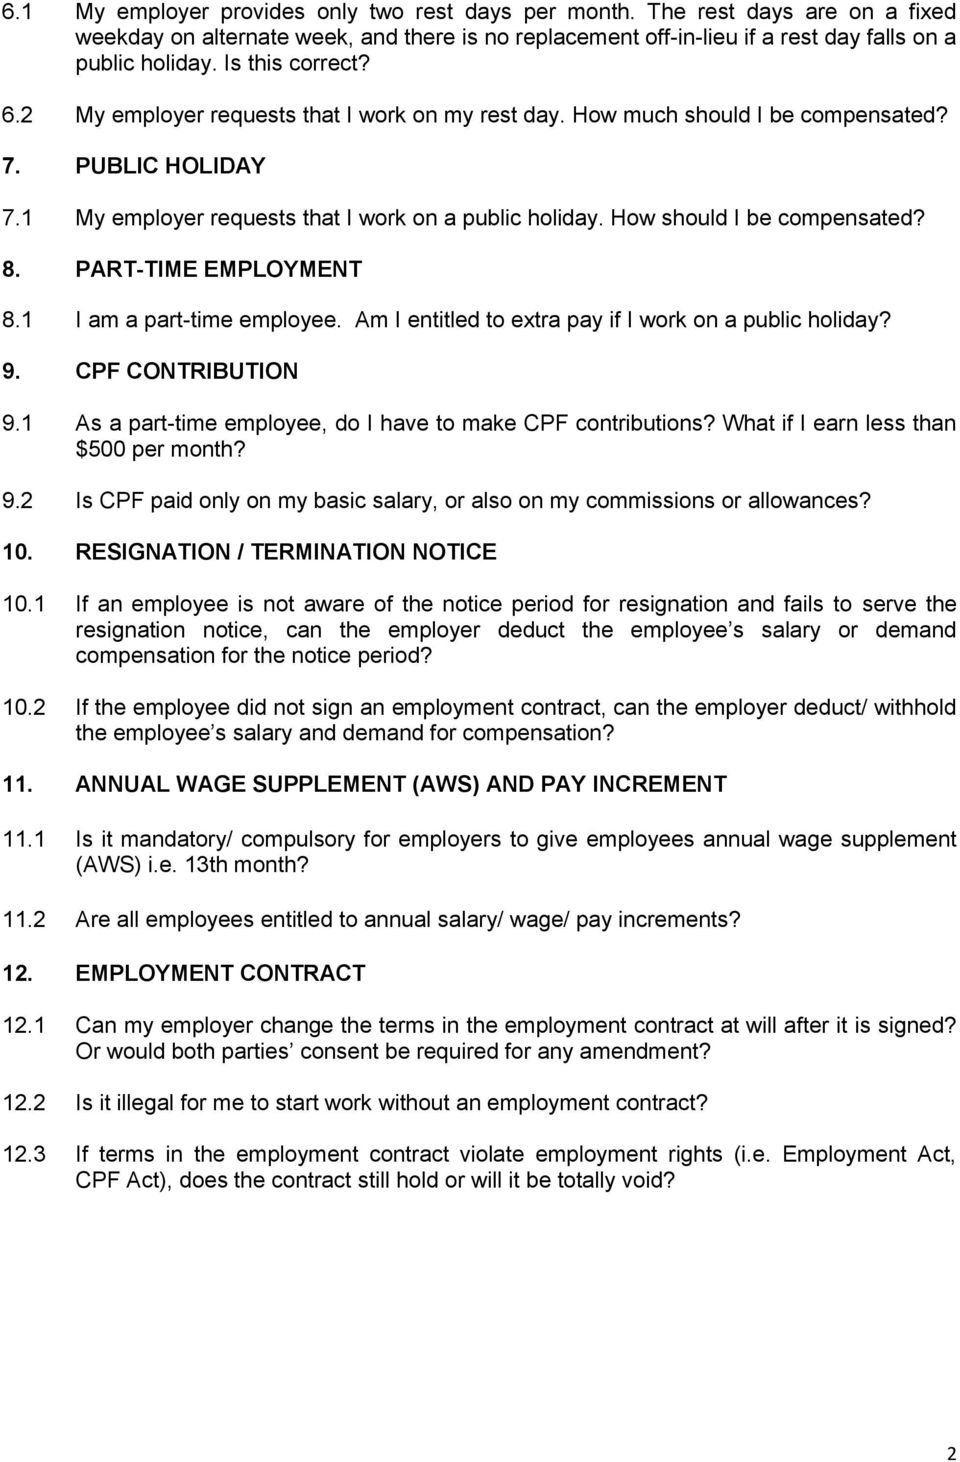 How should I be compensated? 8. PART-TIME EMPLOYMENT 8.1 I am a part-time employee. Am I entitled to extra pay if I work on a public holiday? 9. CPF CONTRIBUTION 9.